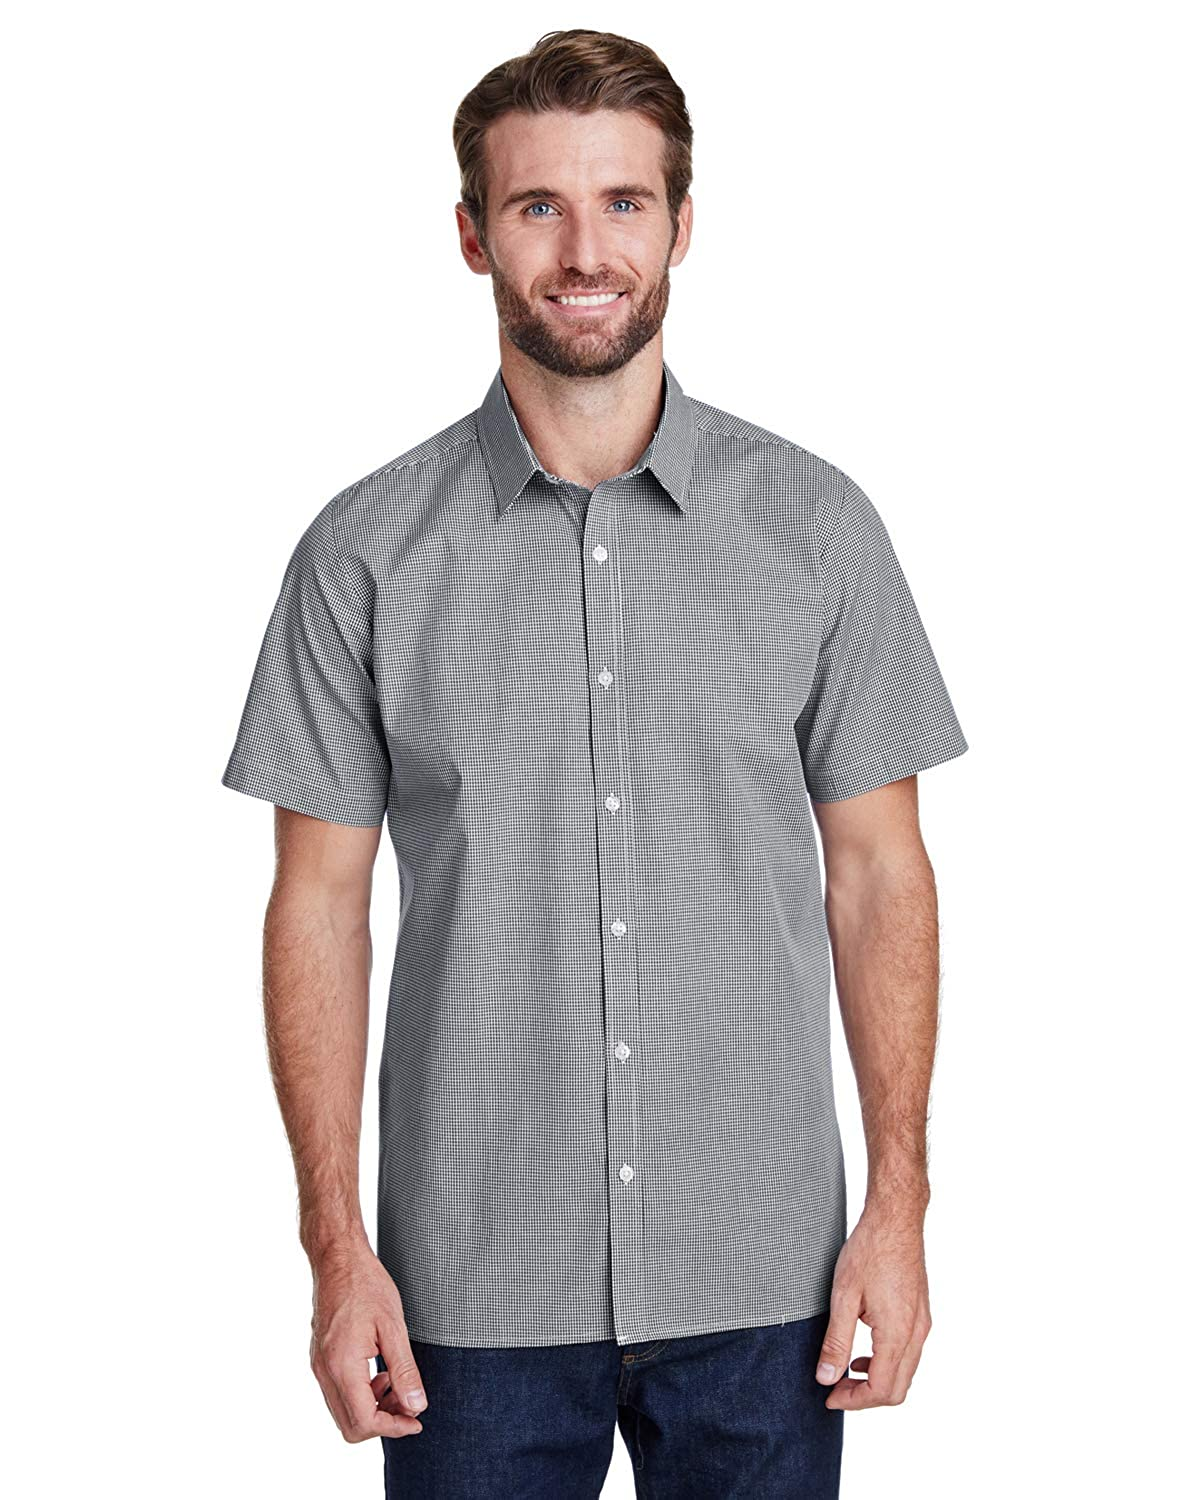 Artisan Collection by Reprime Mens Microcheck Gingham Short-Sleeve Cotton Shirt